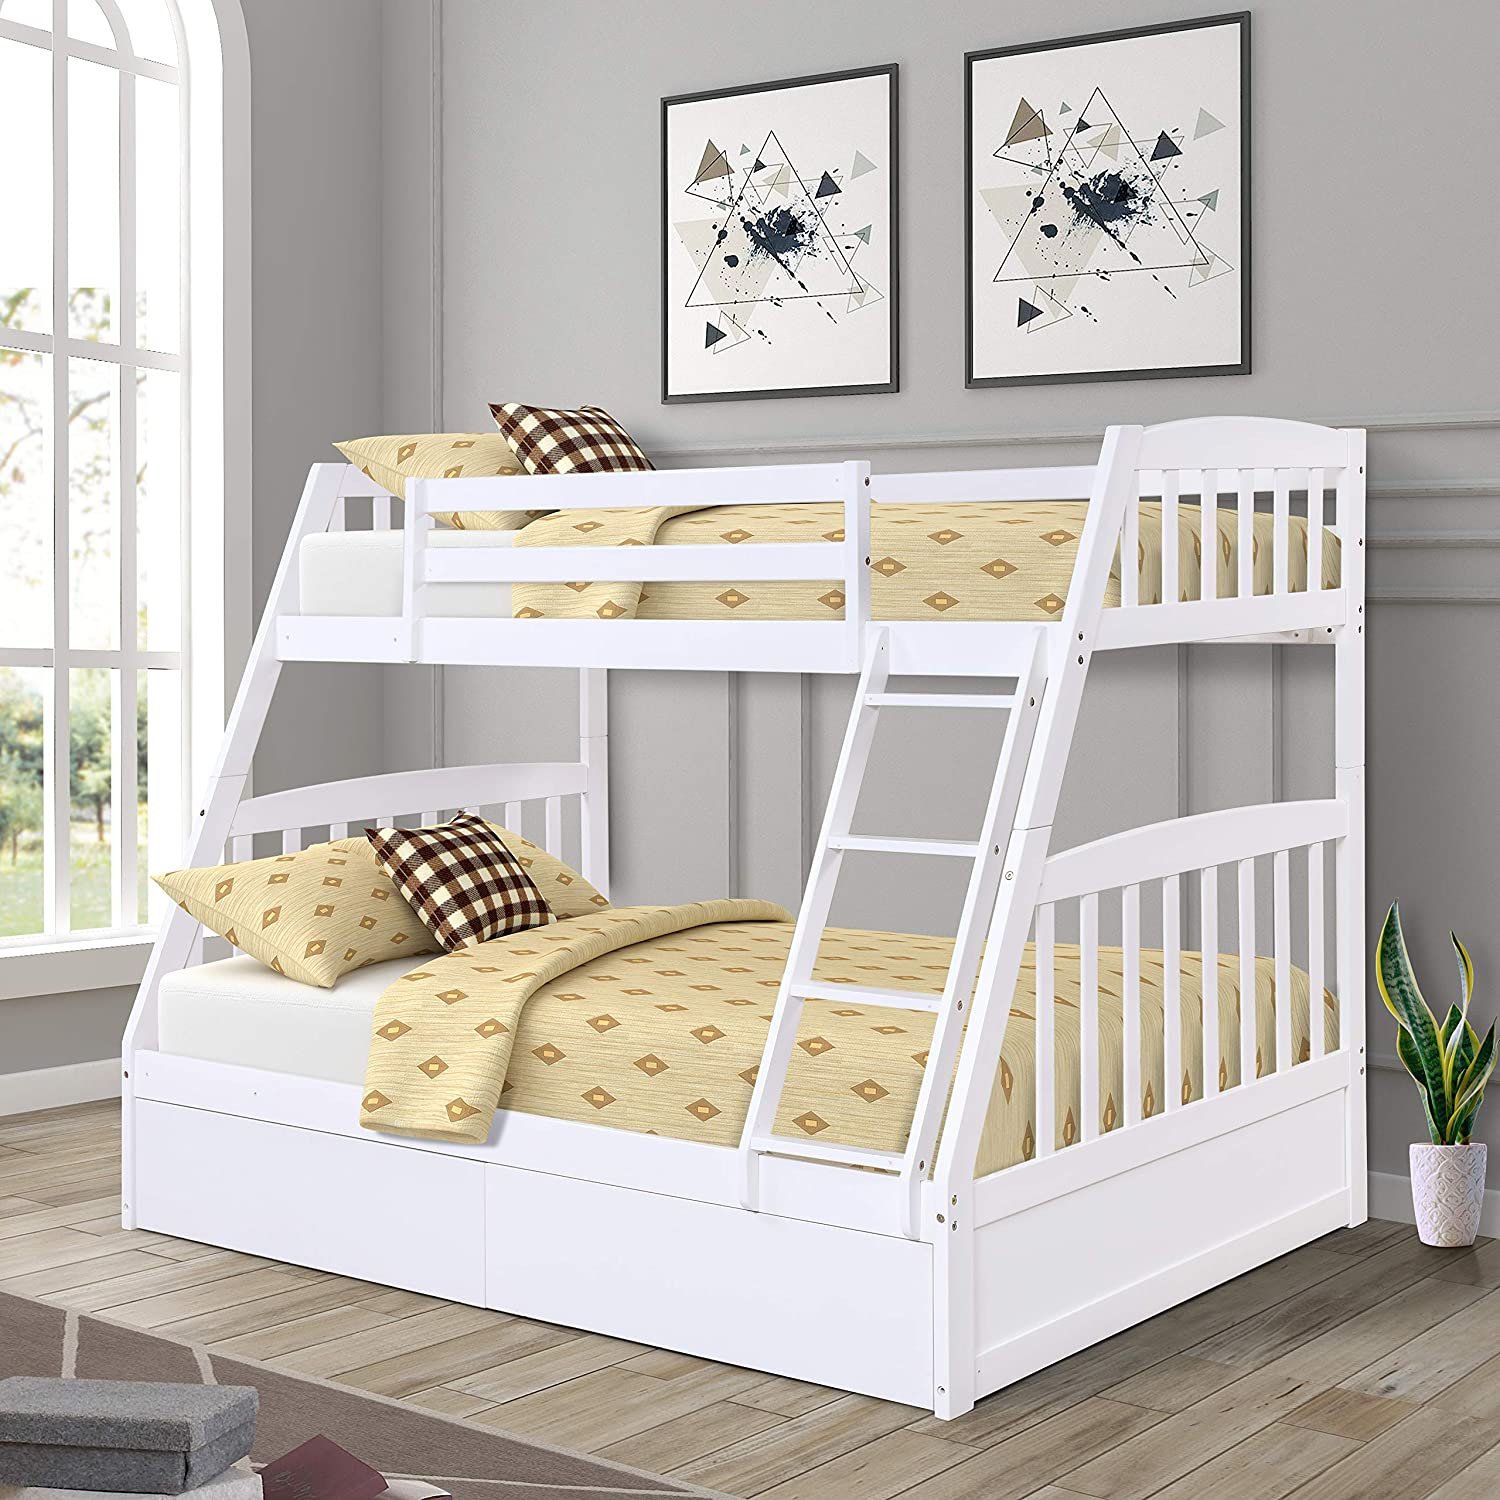 Amazon Com Twin Over Full Bunk Bed Solid Wood Bunk Bed With Two Storage Drawers Safety Rail And Stair White Kitchen Dining